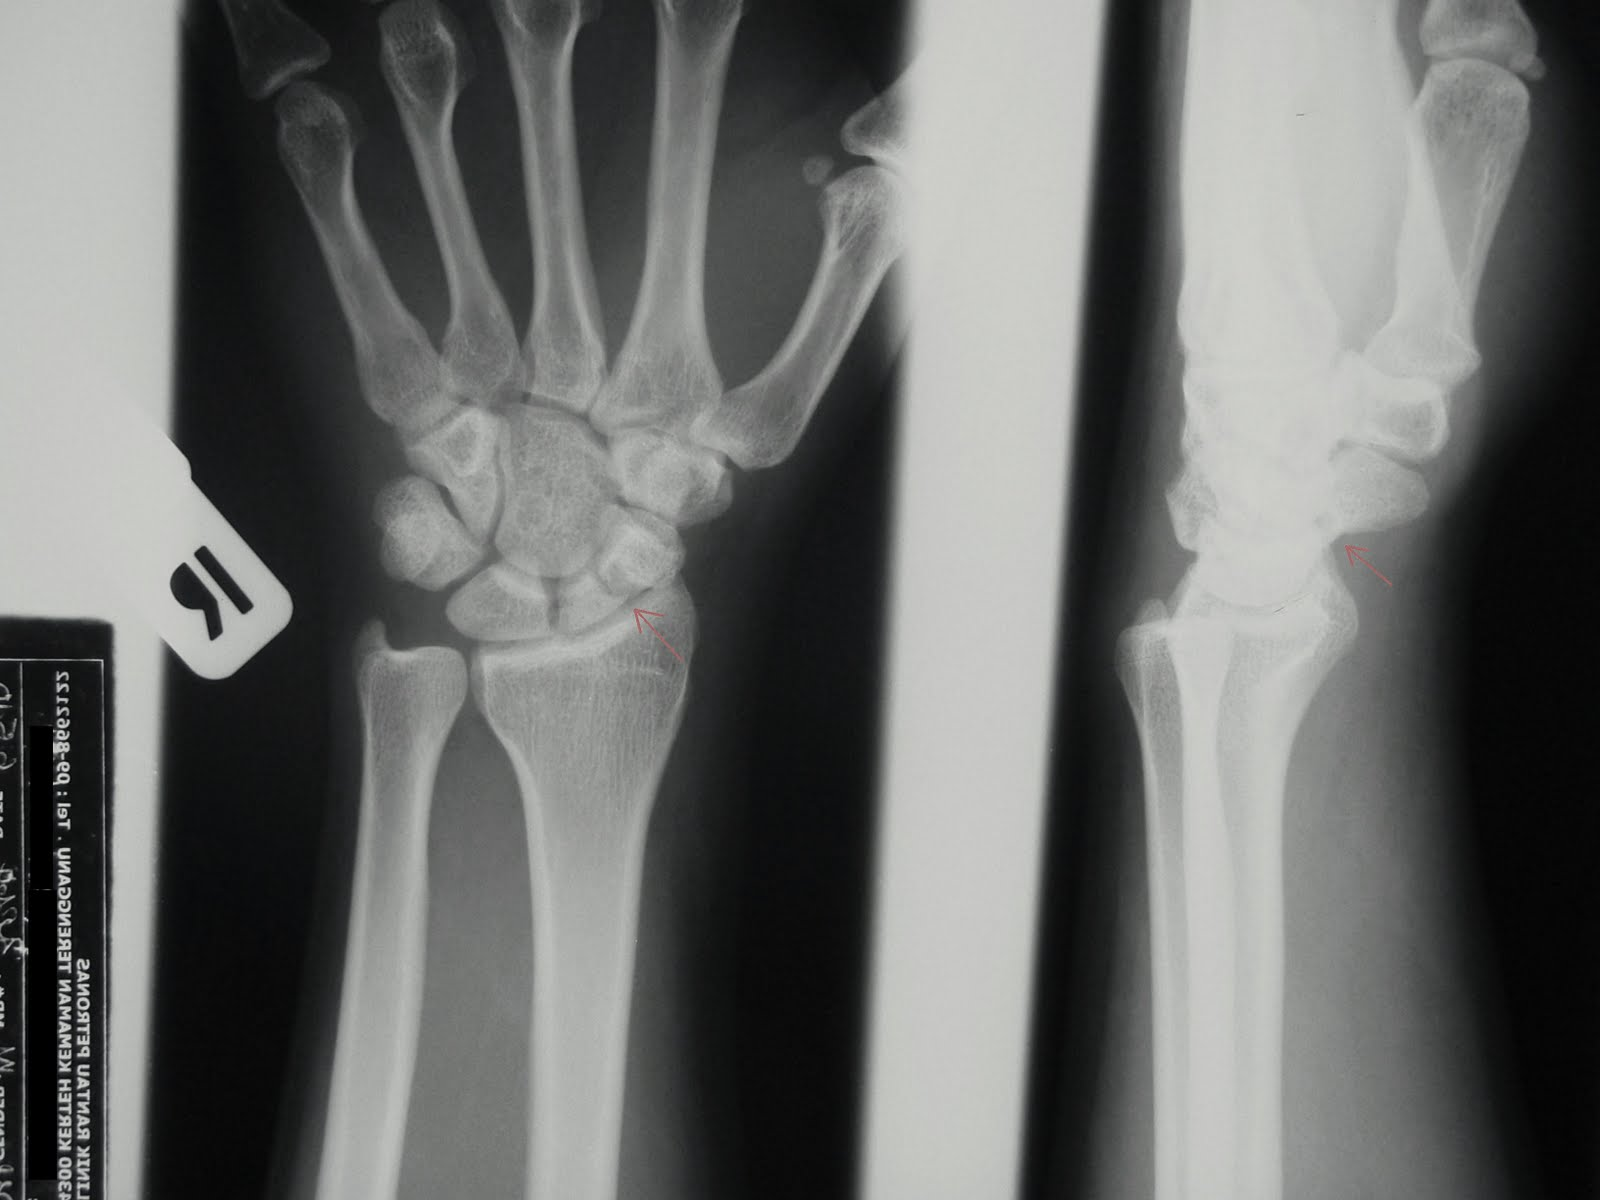 Fracture of scaphoid waist